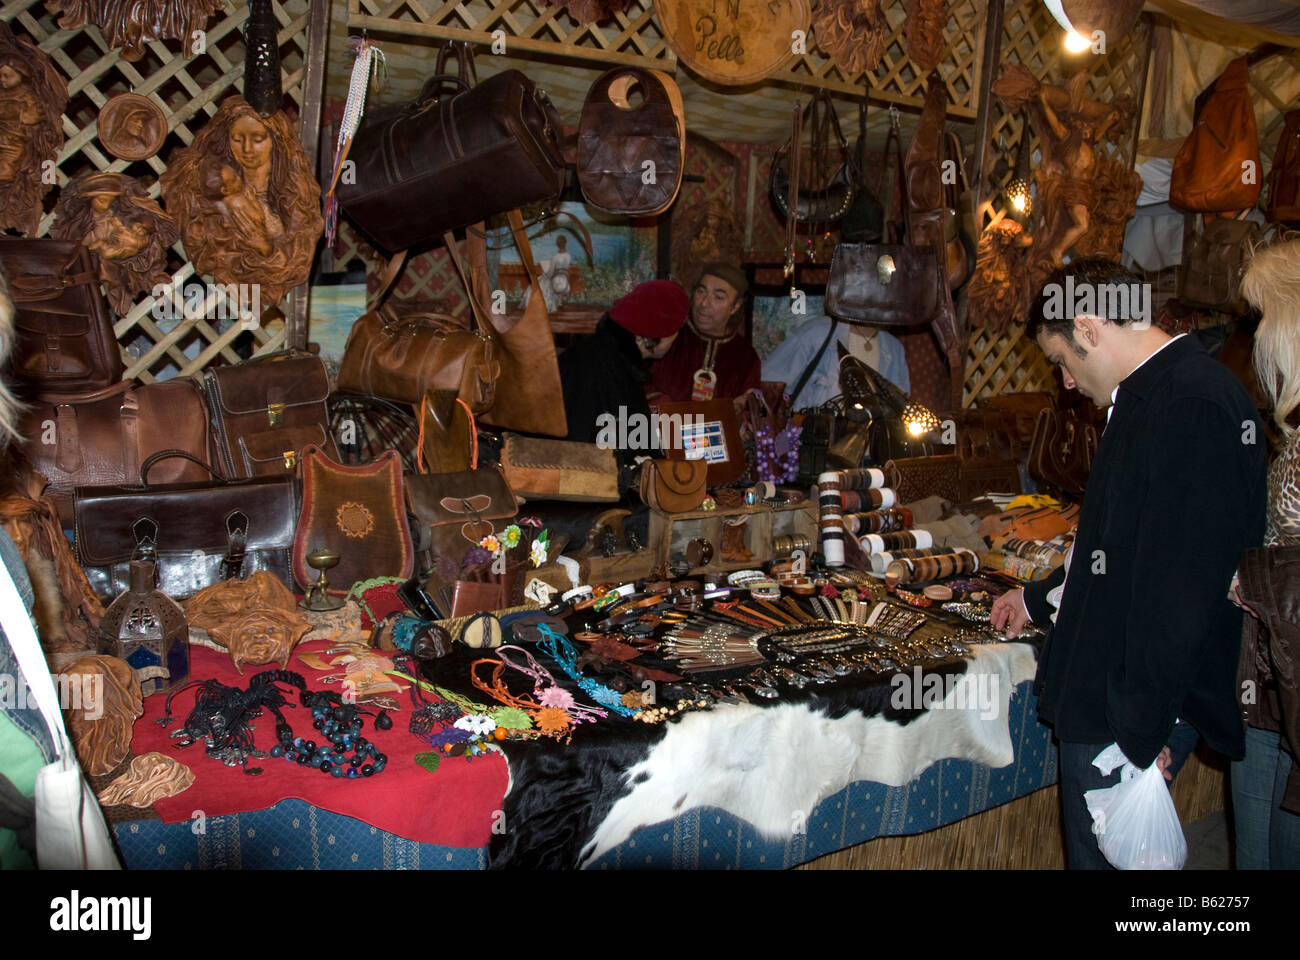 Handmade leather goods on sale at the Medieval Market in Elche / Elx, Alicante, Costa Blanca, Spain - Stock Image